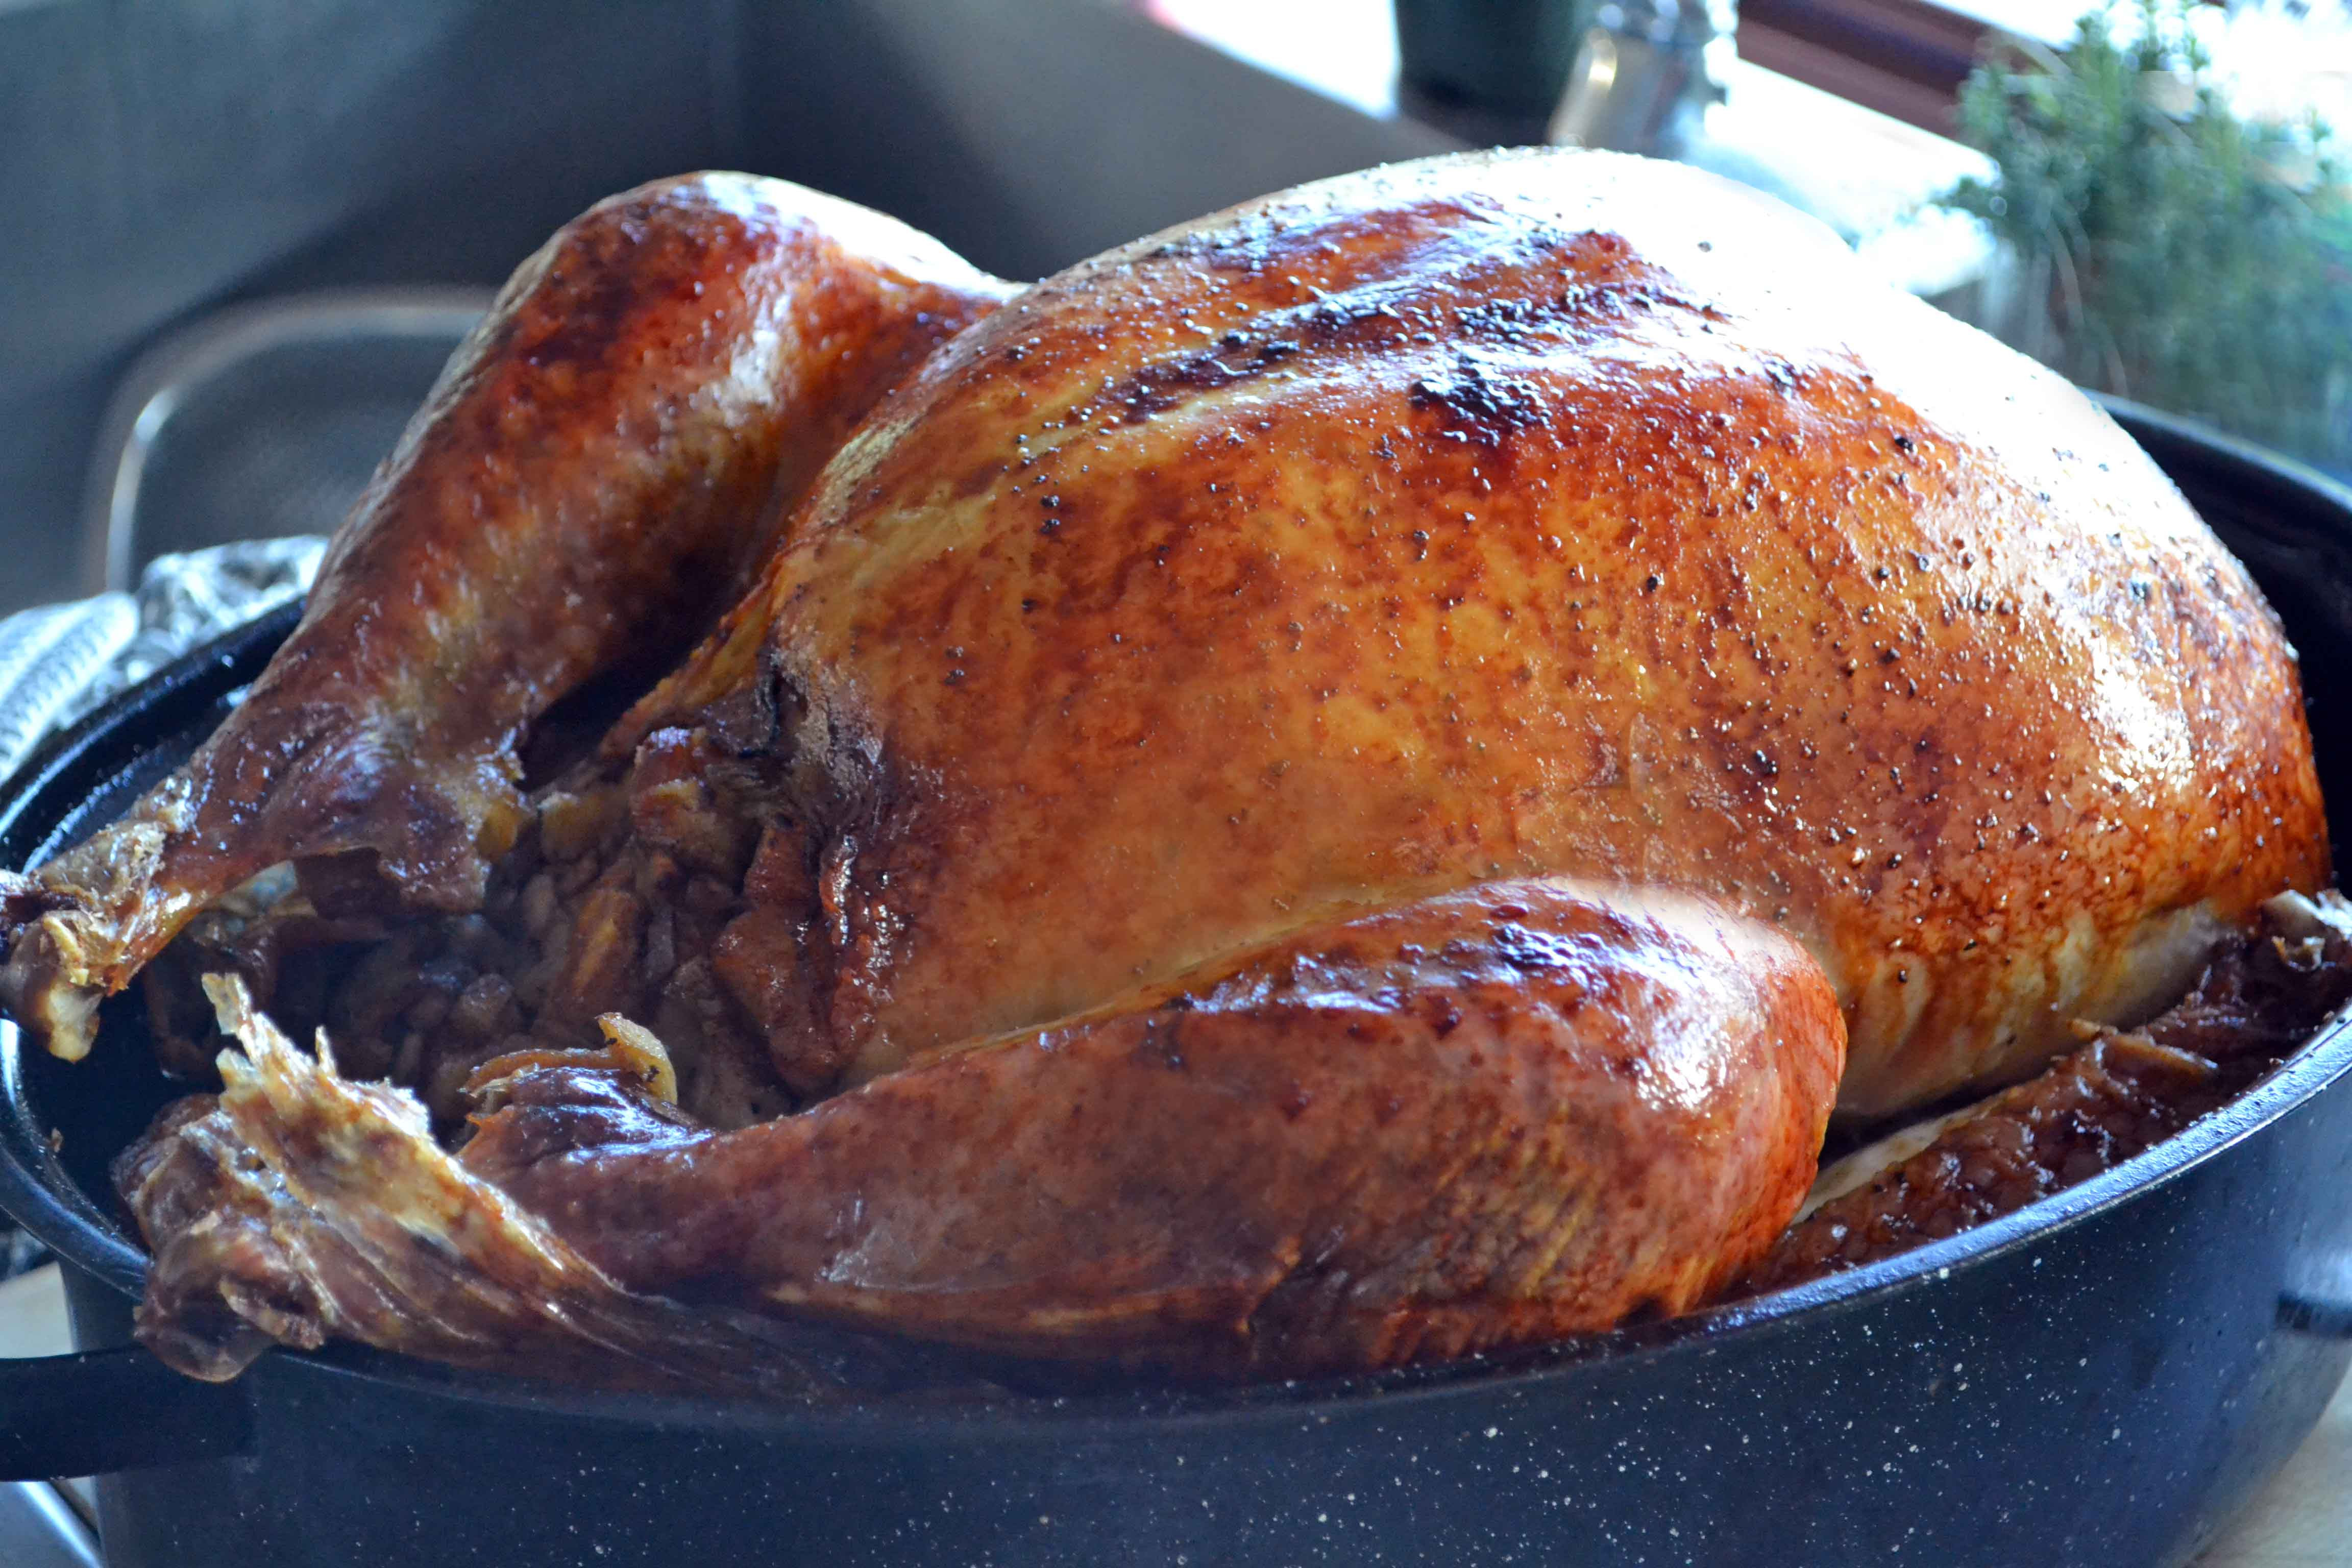 Cooked Turkey For Thanksgiving  Poultry Fish & Seafood – The Best of Bridge